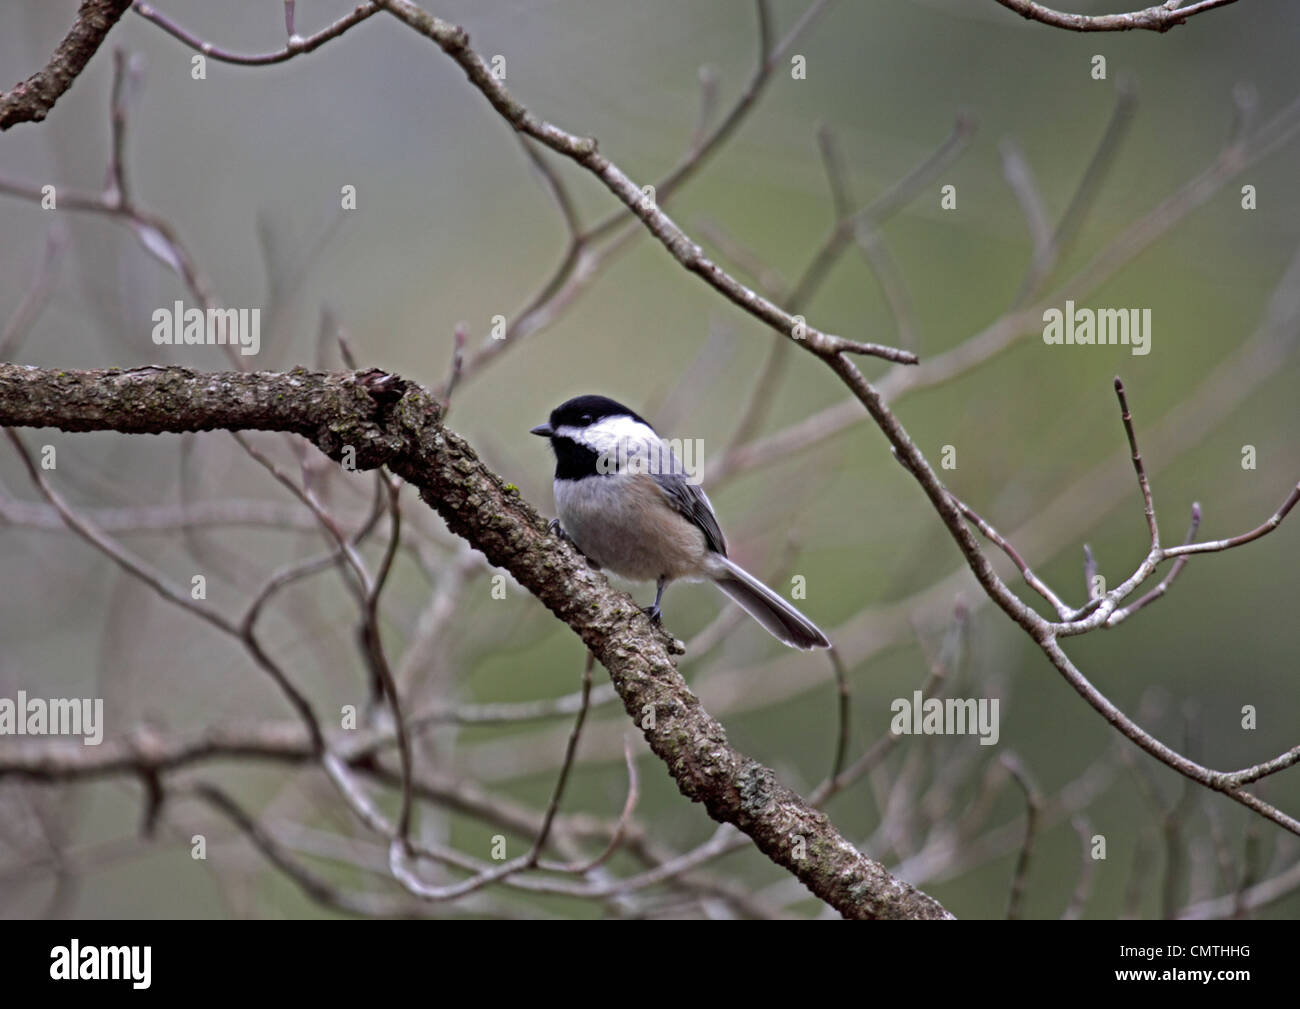 Carolina chickadee perched on branch in forest in Tennessee - Stock Image